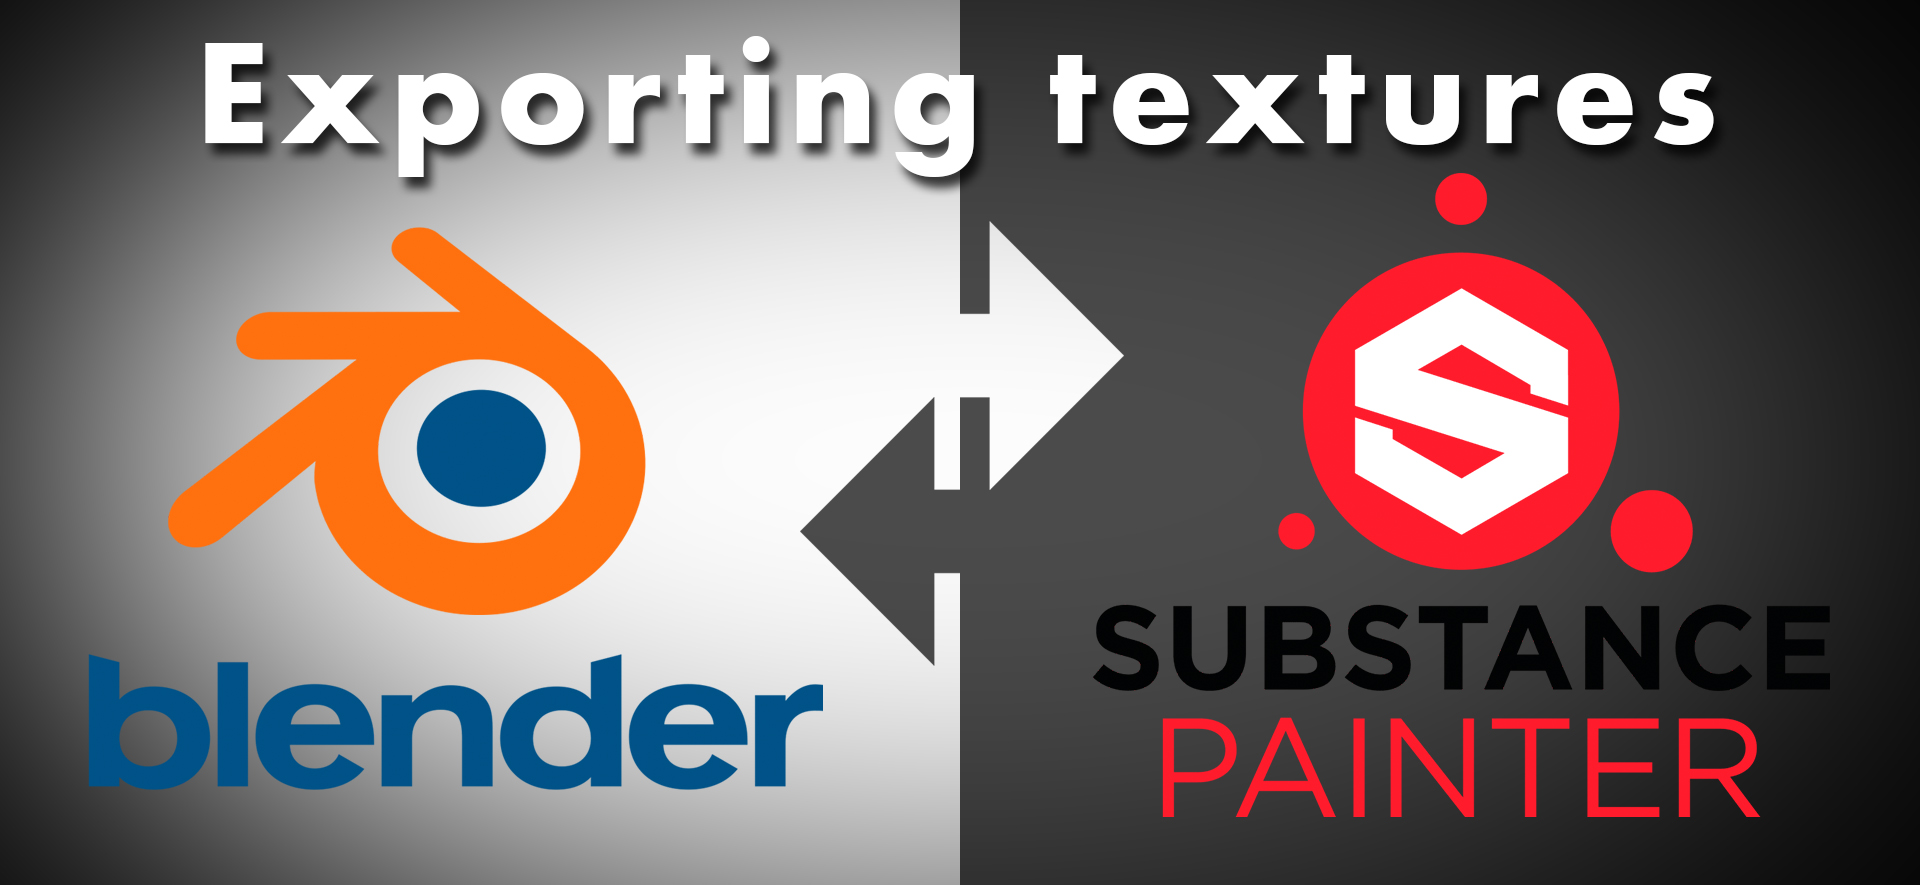 Exporting textures for Blender from Substance Painter